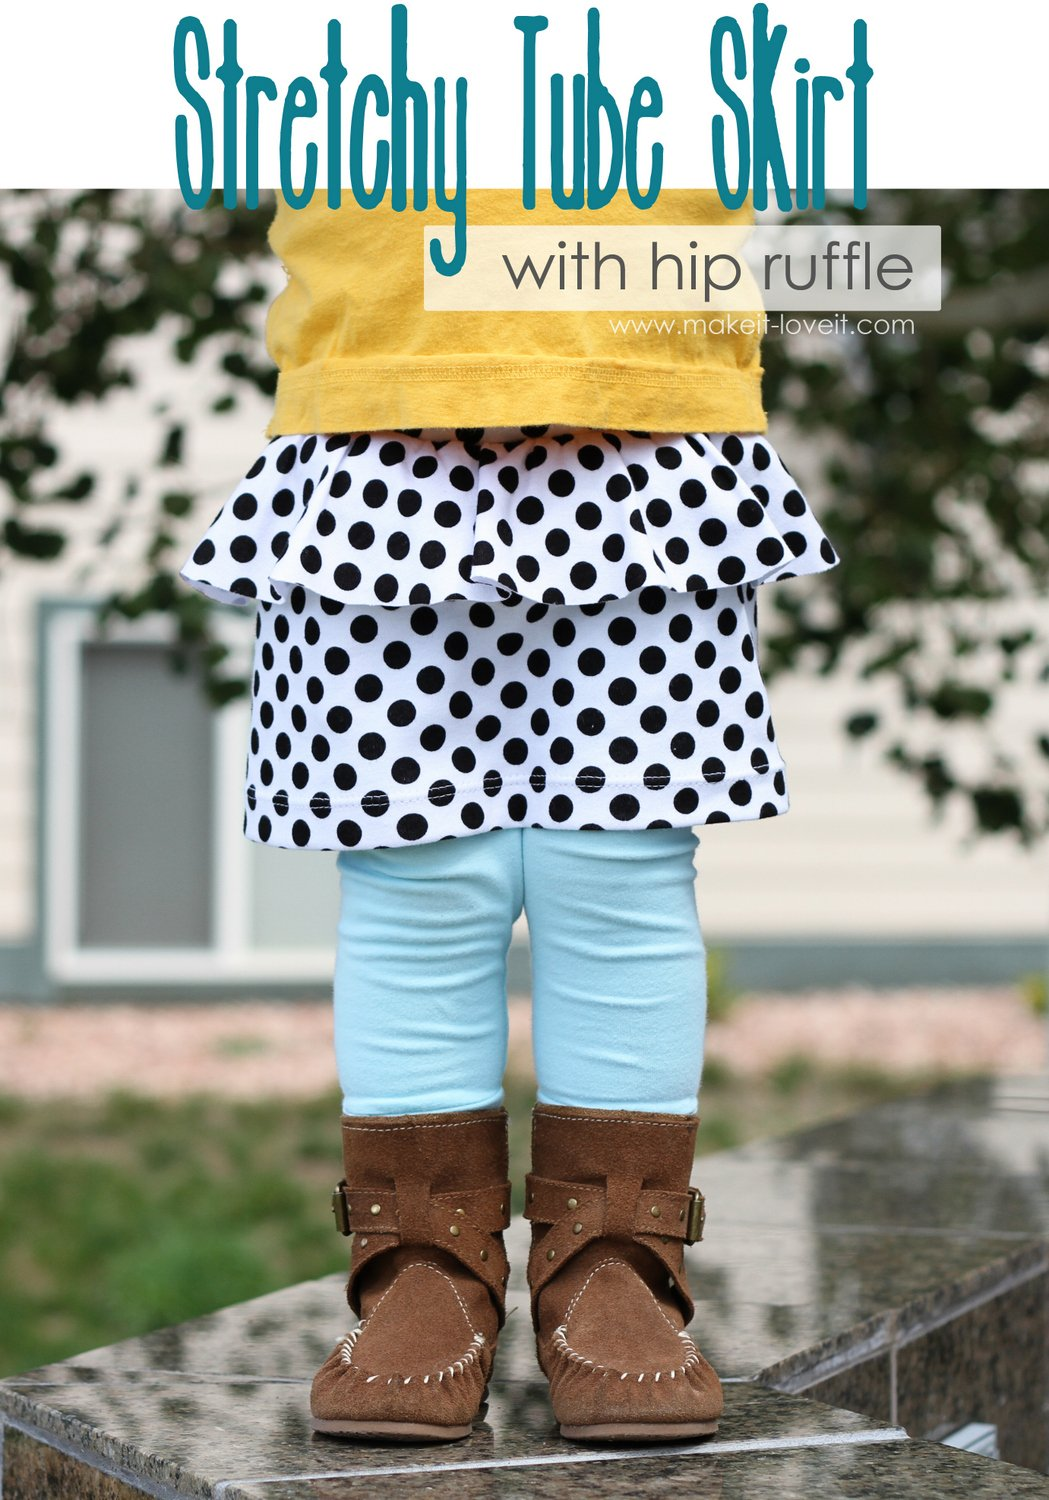 Stretchy Tube Skirt with Hip Ruffle (for girls and women both!)